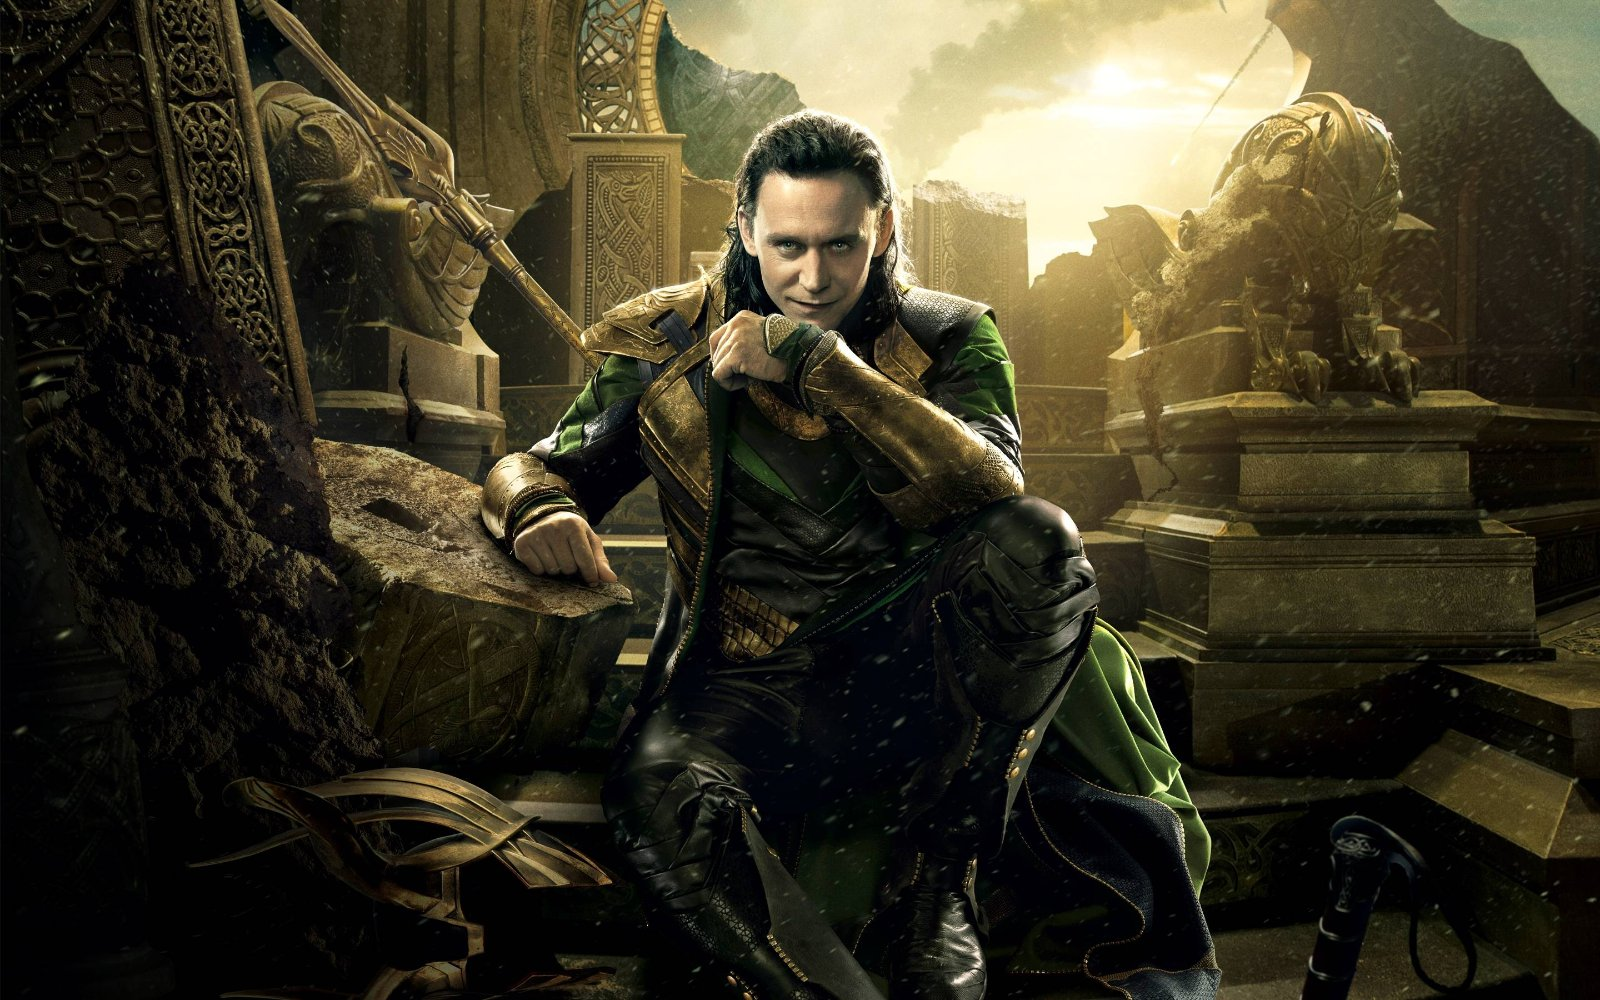 Download for free the best wallpapers of Loki, the new Marvel series on Disney +